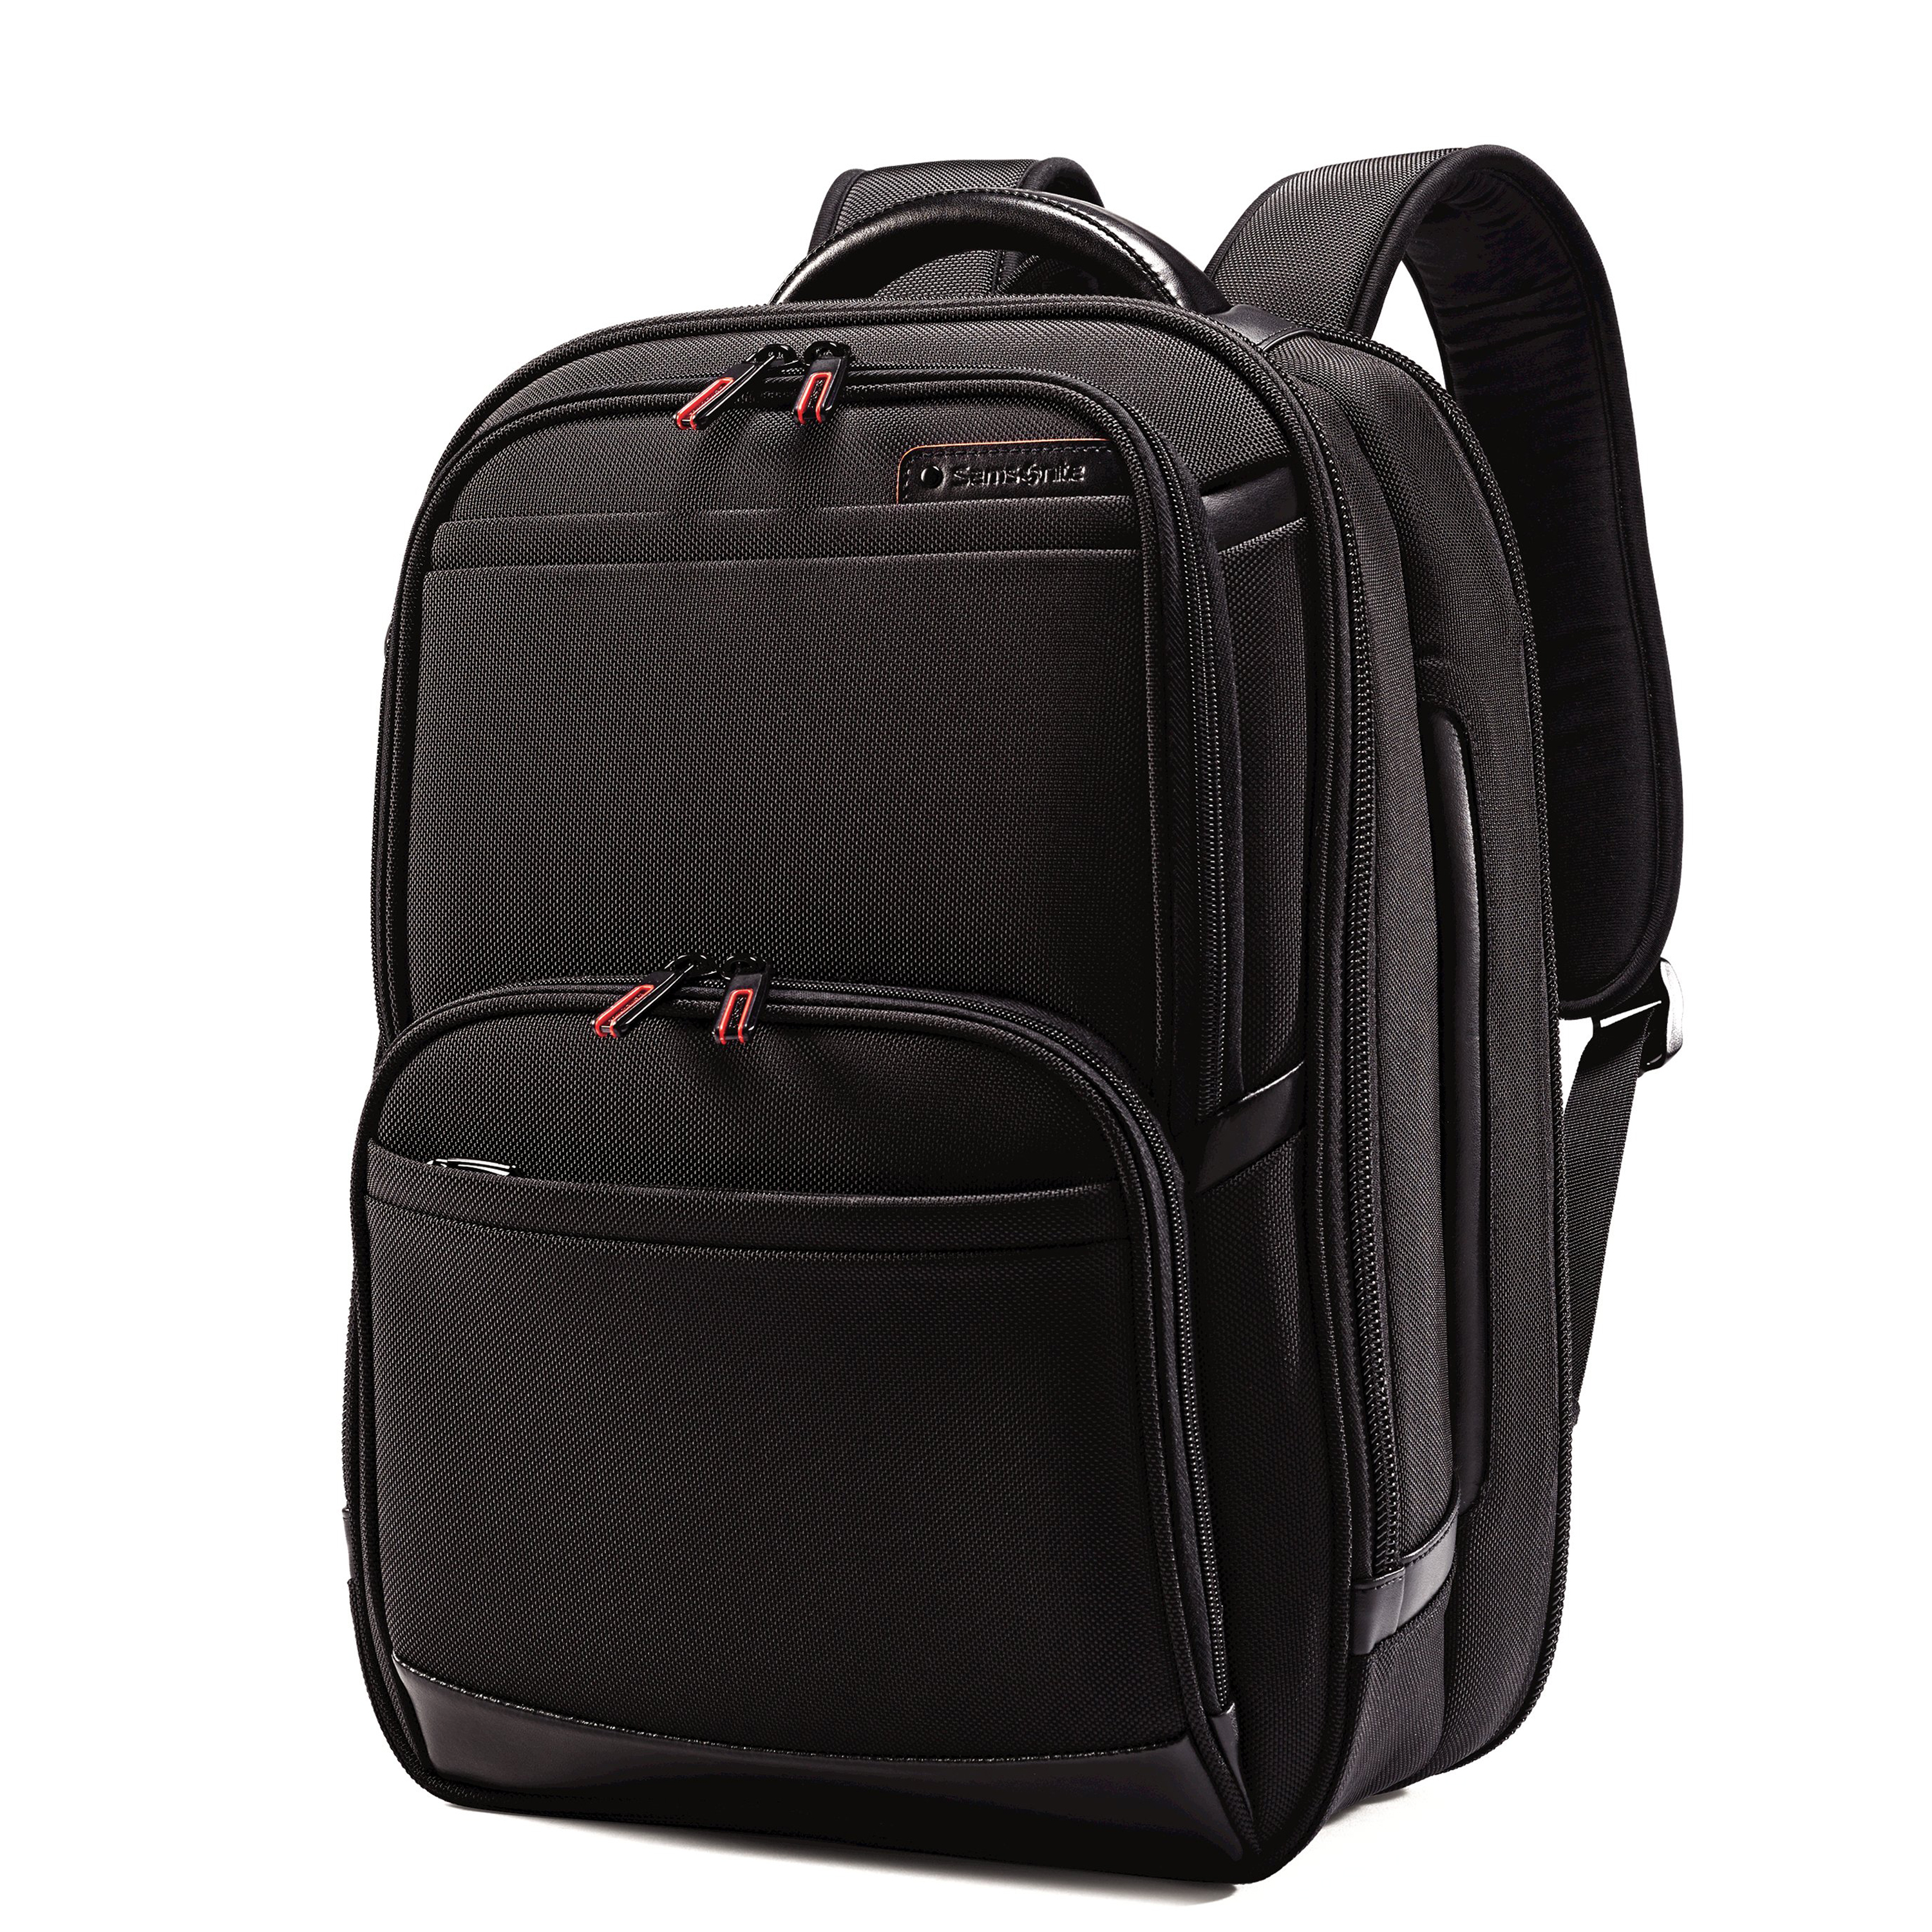 "Compact design. Fits 13""-15.6"" laptops. Leather touch points. Poron® shock absorbers. Perfect Fit adjustable laptop system. Tablet/iPad® pocket. TSA Checkpoint friendly. Smart sleeve. Quick stash pocket. Cord/accessory pouch included. Weight: 3.2 lbs. Body Dimensions: 17.25"" x 12.25"" x 5.5"""